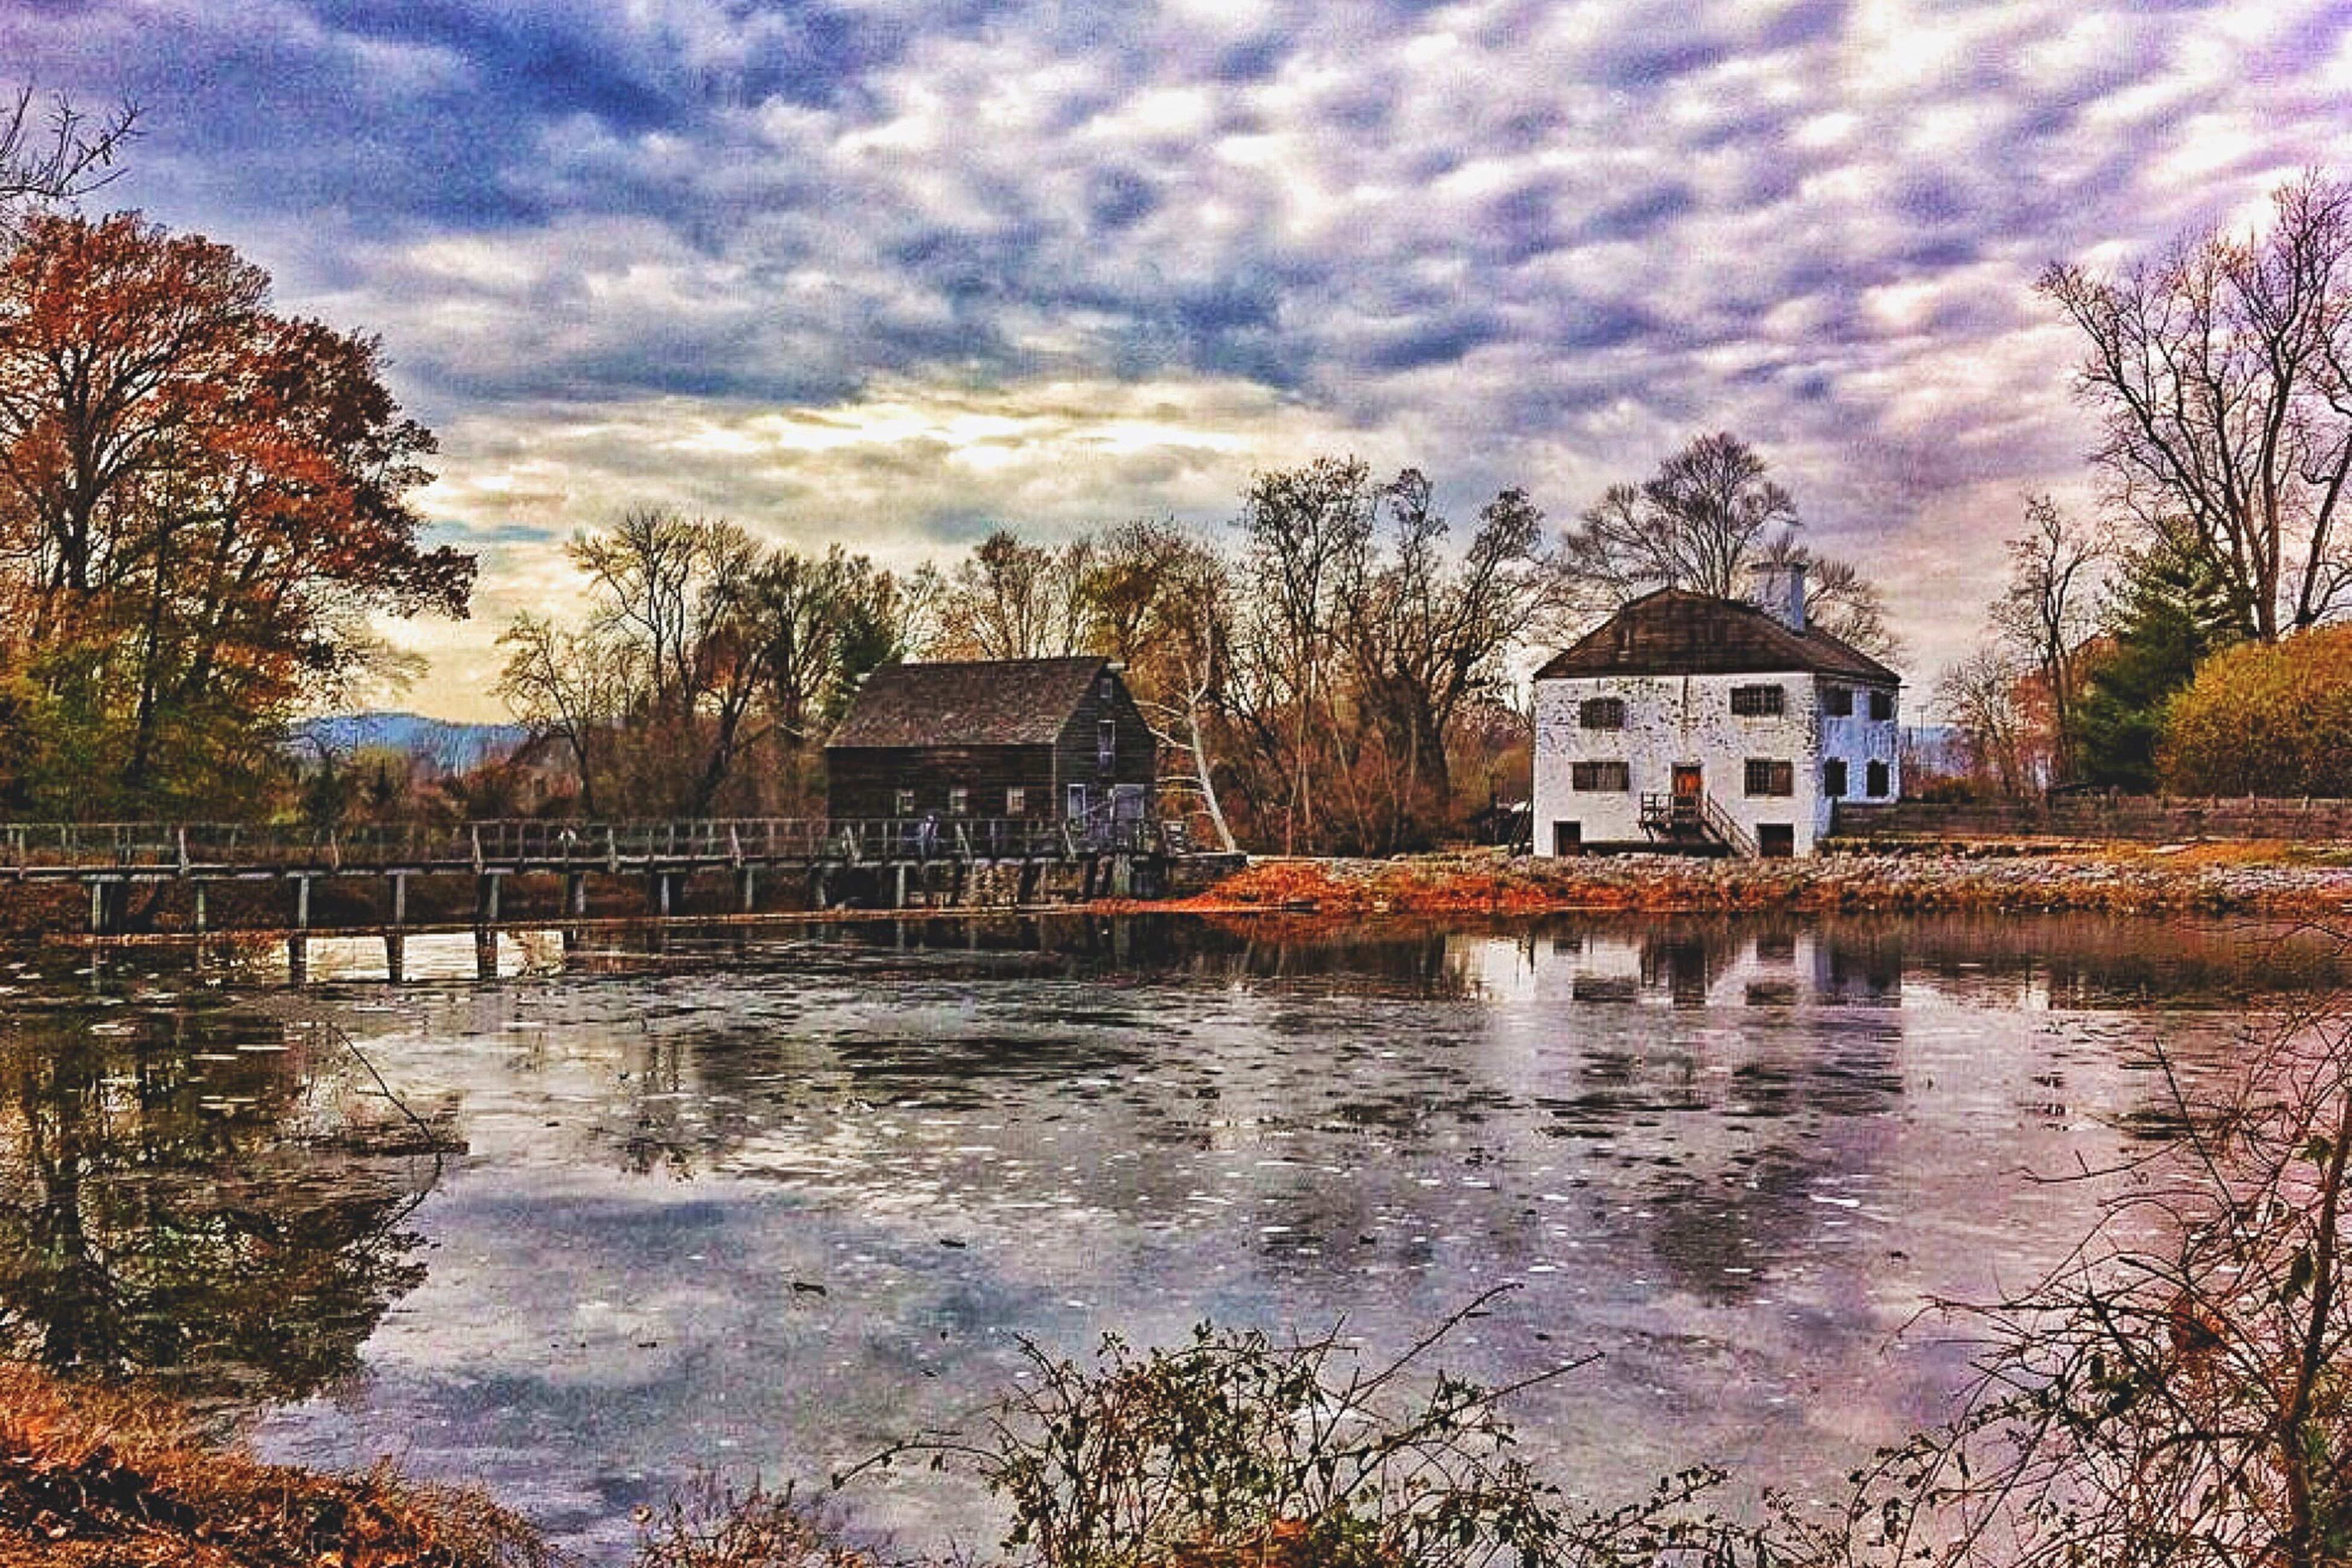 water, built structure, reflection, architecture, lake, tree, building exterior, waterfront, house, sky, tranquil scene, tranquility, cloud, calm, scenics, cloud - sky, cloudy, nature, day, outdoors, blue, beauty in nature, no people, riverbank